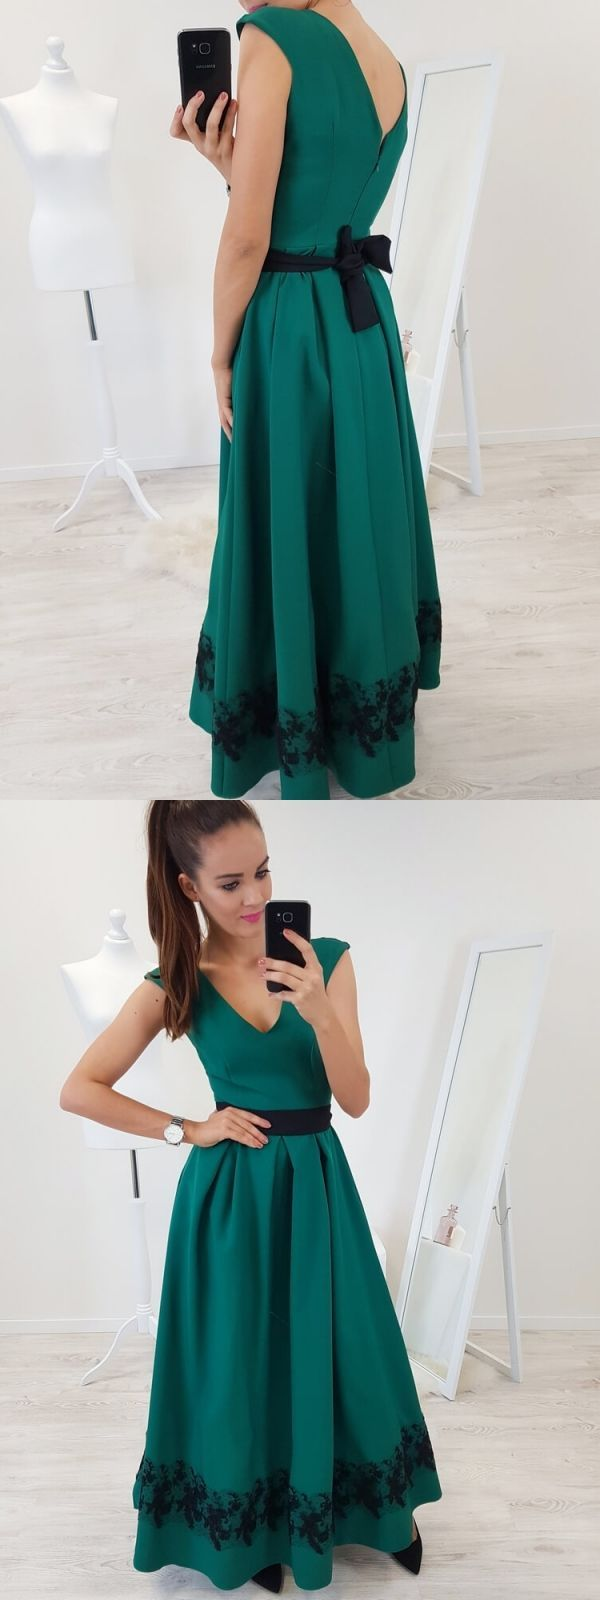 Elegant dark green stain formal evening dresses for women simple